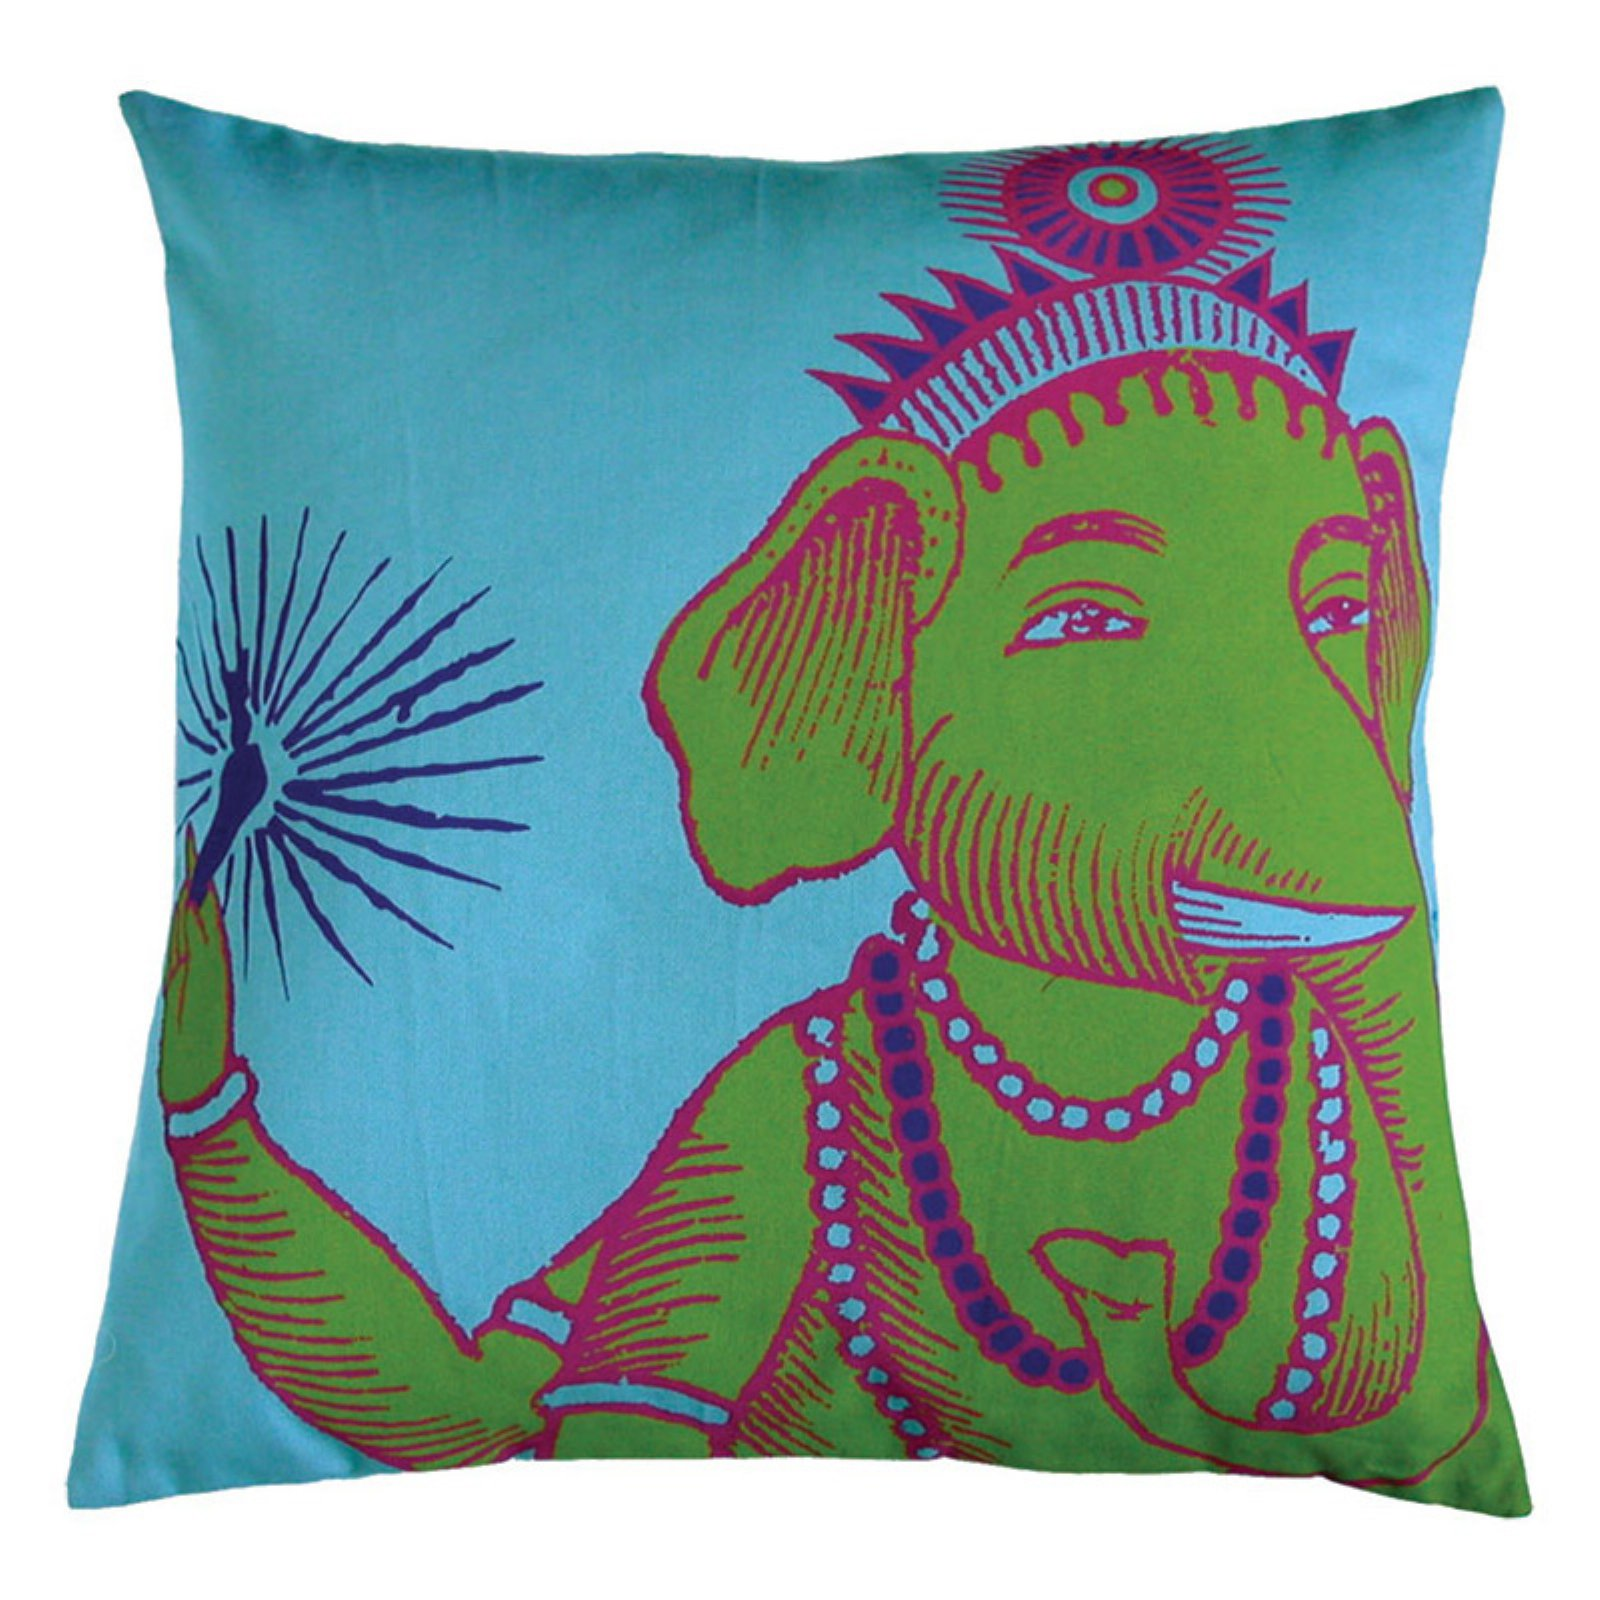 Koko Company Bazaar Turquoise Decorative Pillow